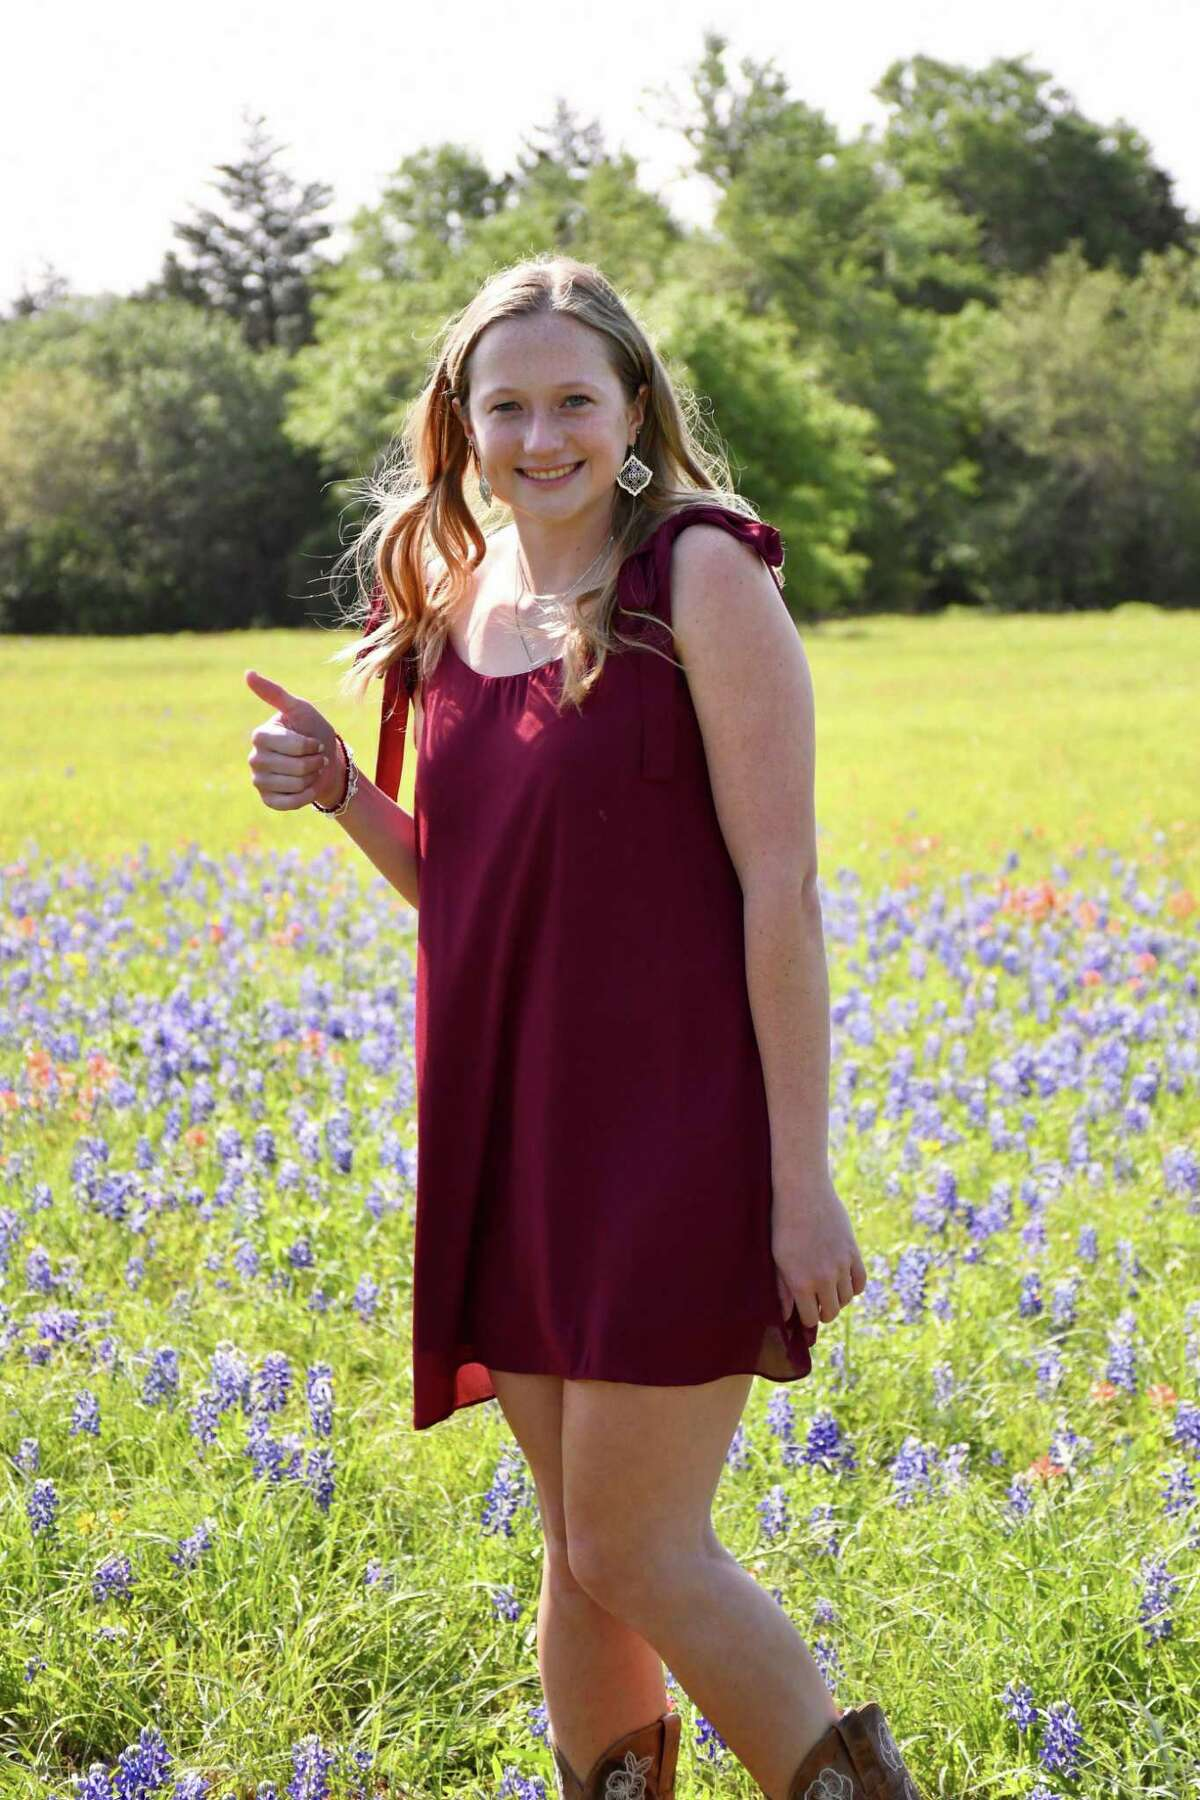 Riley Hull is graduating from Katy High School and has been selected as a recipient of the 2020-21 Katy Area Retired Educators Scholarship.